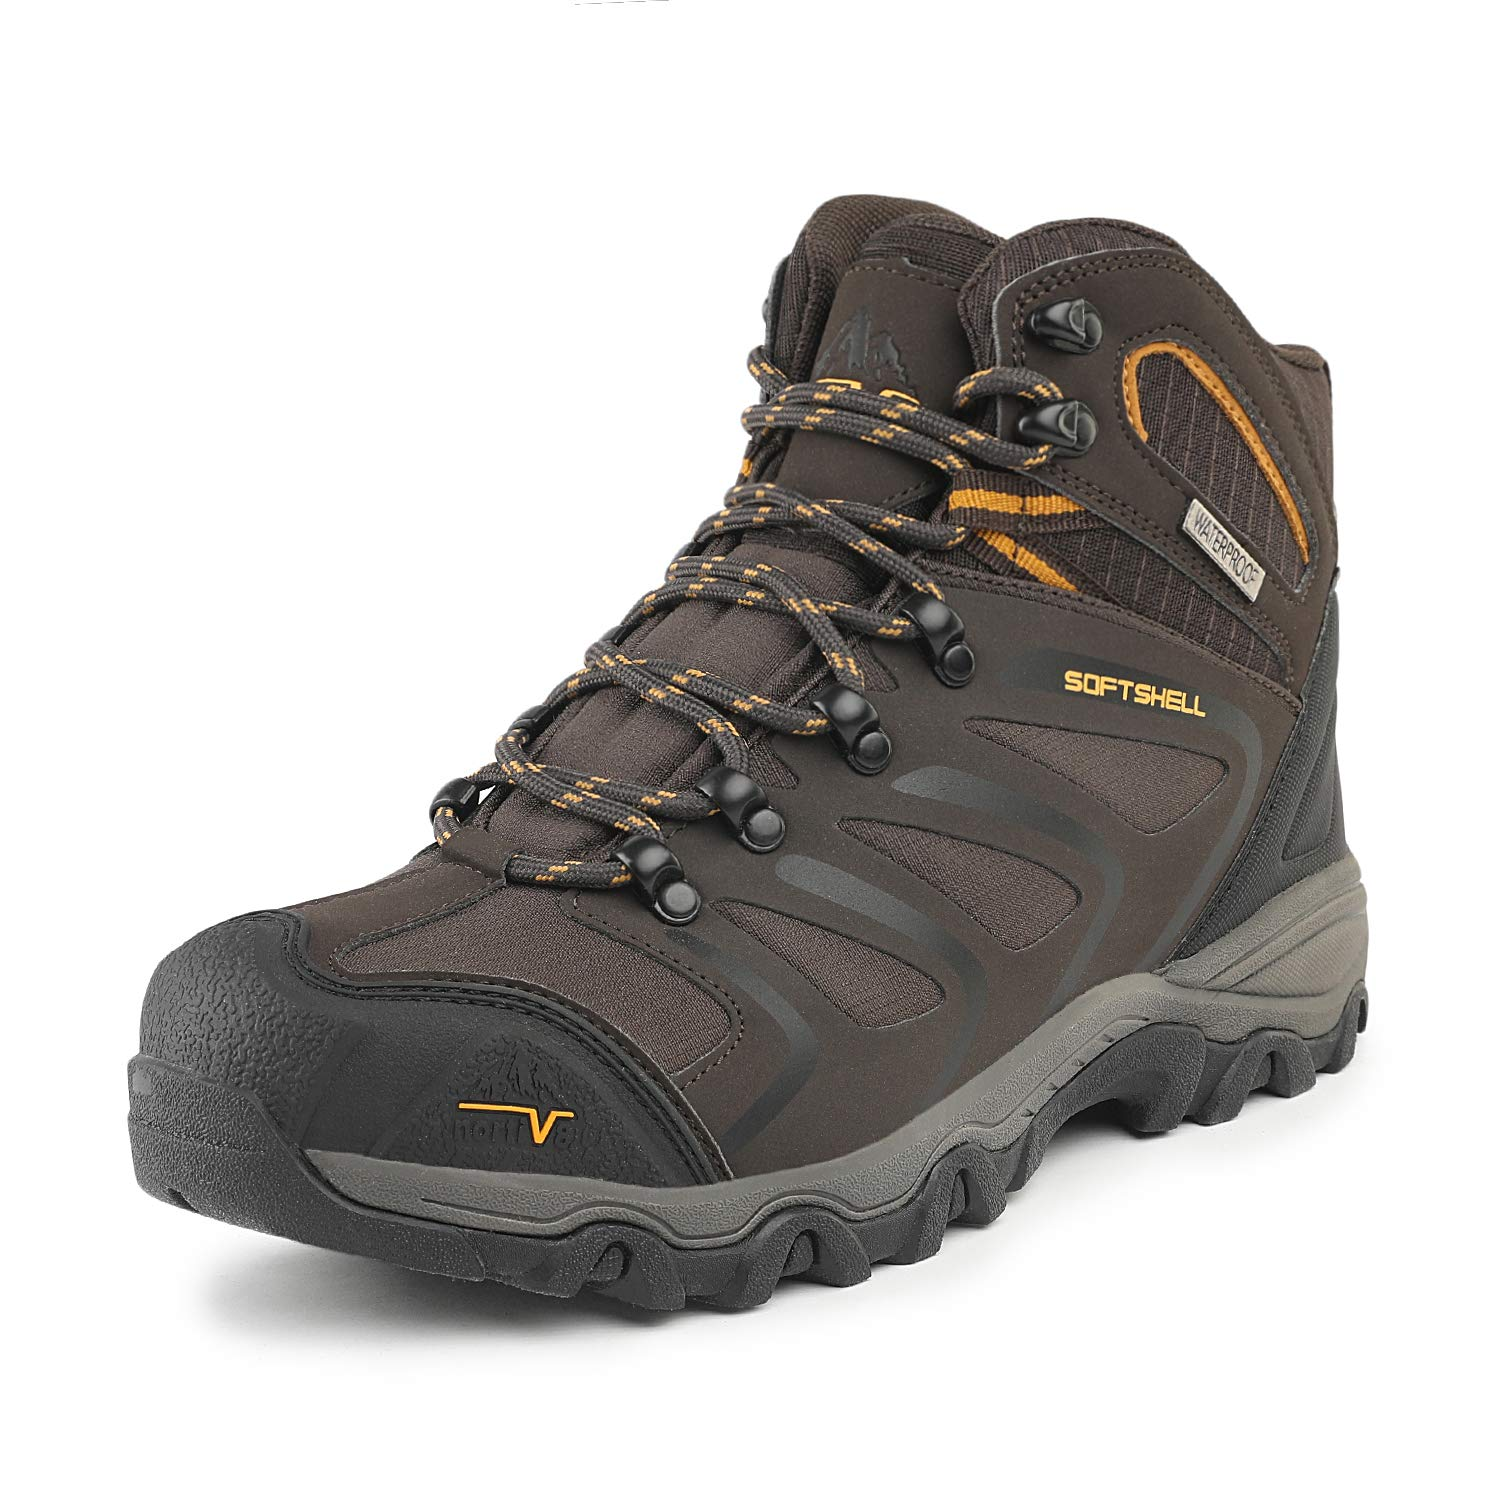 NORTIV 8 Men's 160448 Brown Black Tan Ankle High Waterproof Hiking Boots Outdoor Lightweight Shoes Backpacking Trekking Trails Size 12 M US